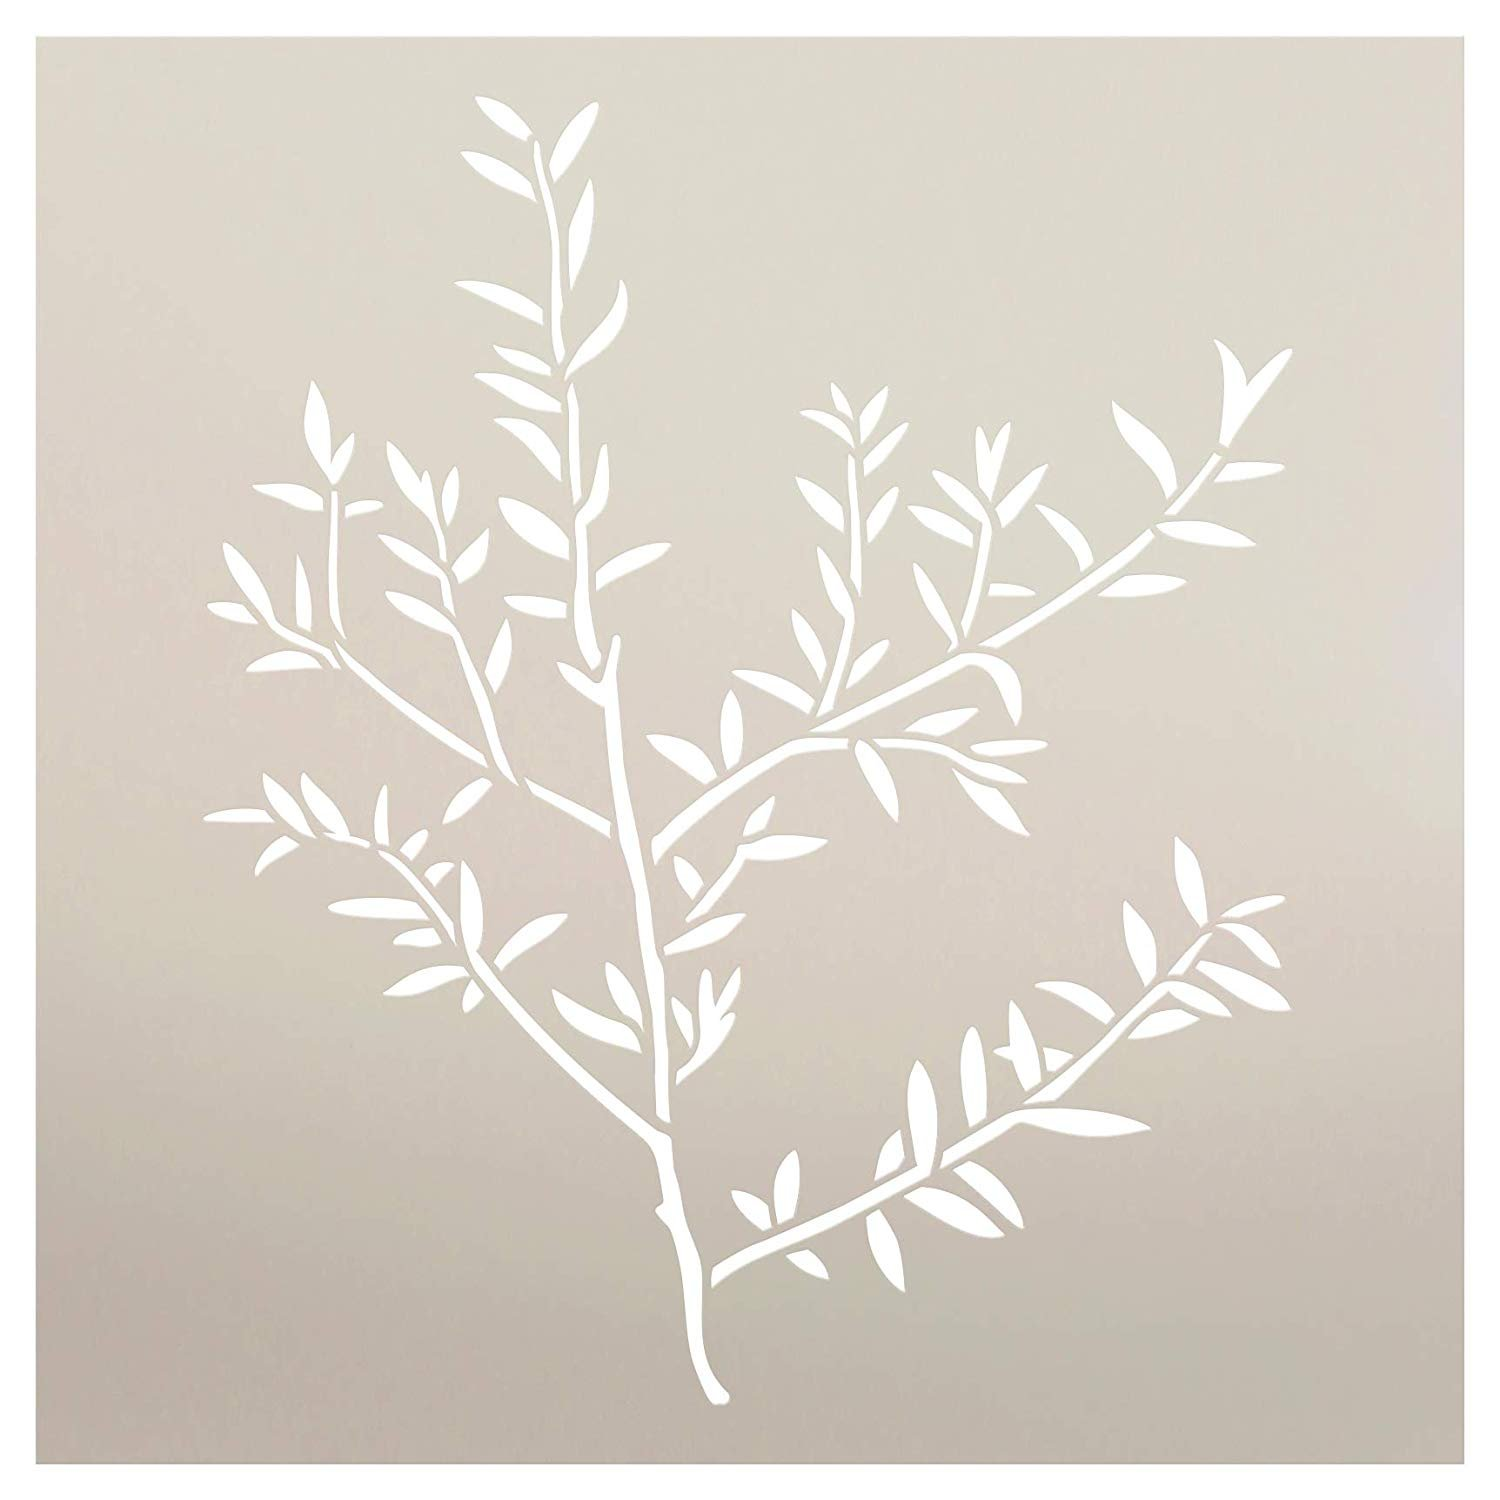 Thin Leaf Sprig Stencil by StudioR12   Reusable Mylar Template   Paint Wood Sign   DIY Rustic Fall Bush Tree Home Decor   Craft Outdoor Nature Gift - Autumn - Spring   Select Size